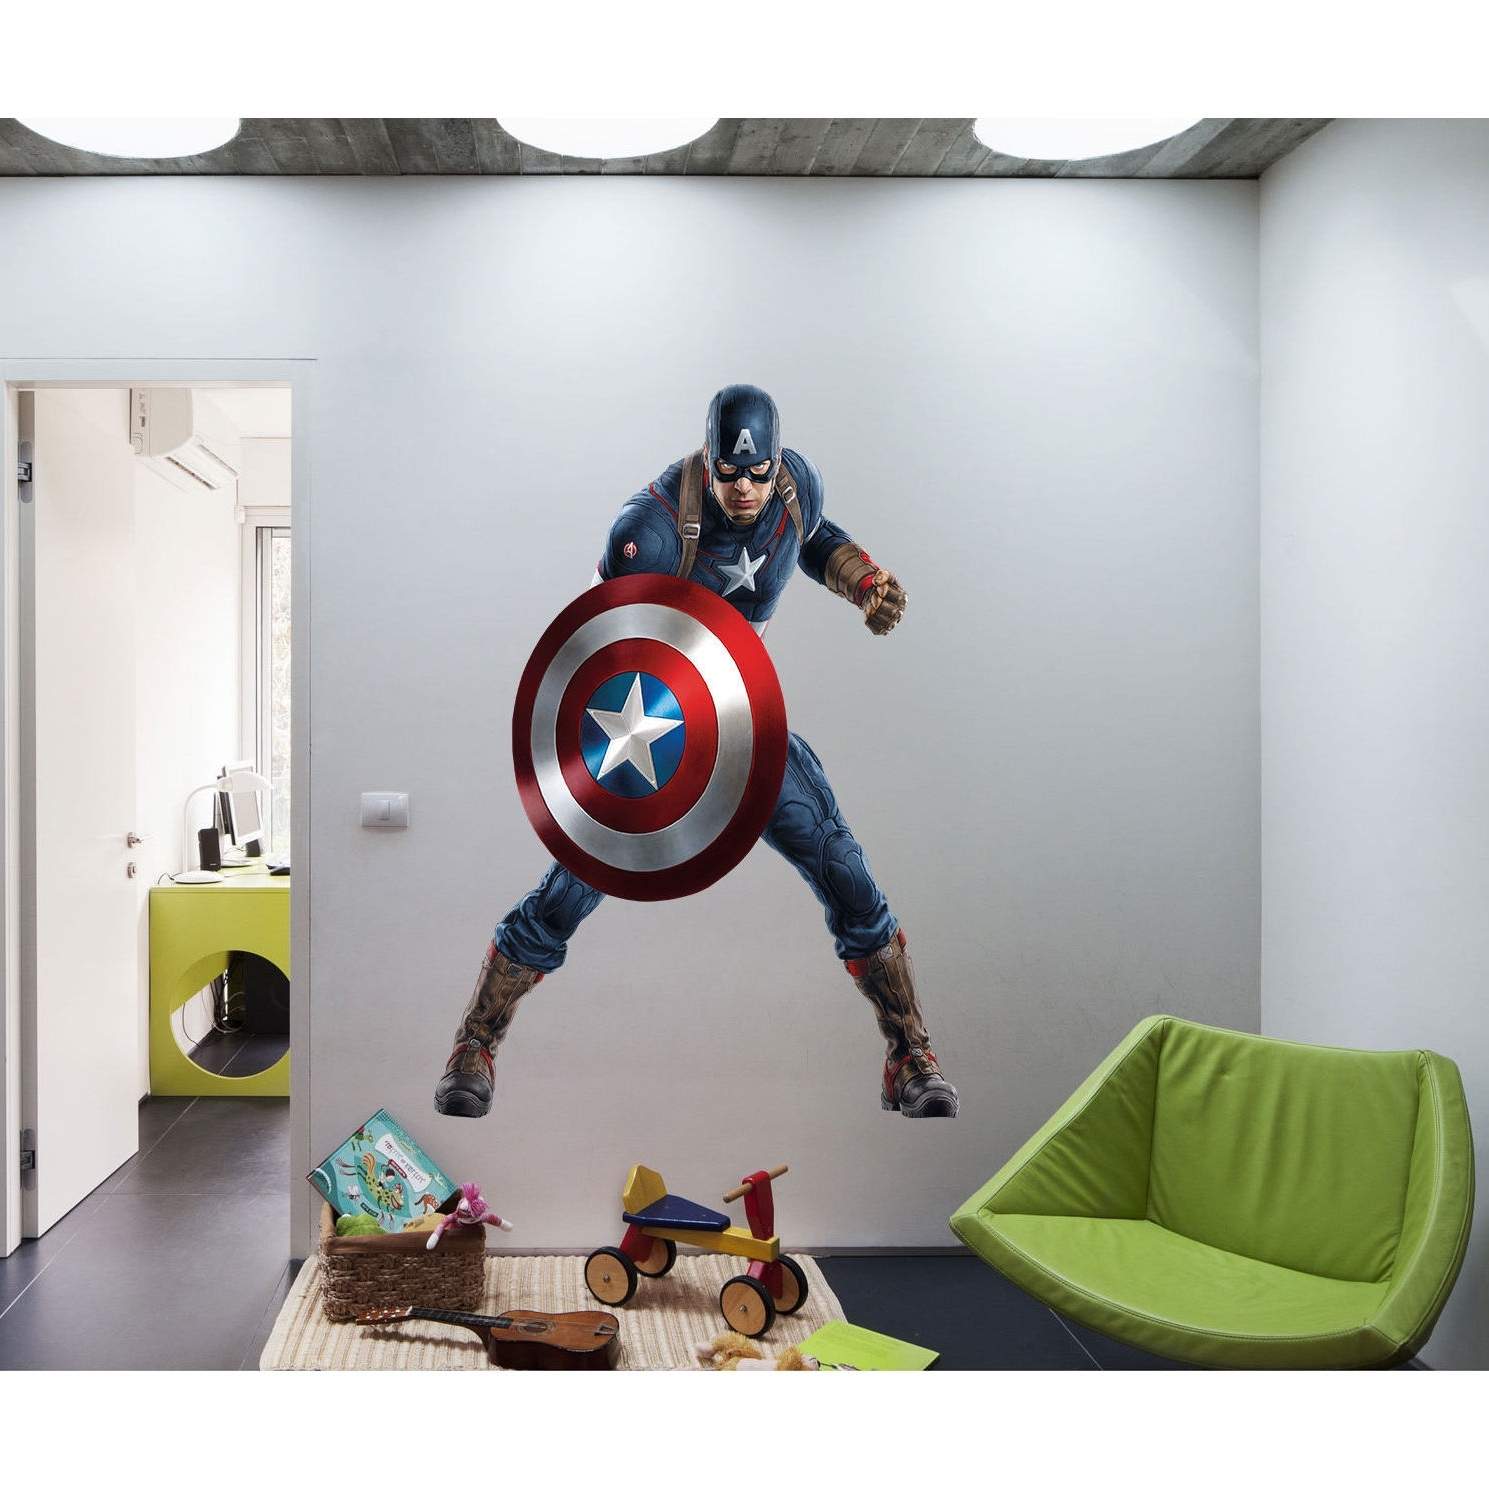 Shop Full Color Superhero Captain America Sticker, Decal, Wall Art Intended For Most Up To Date Captain America Wall Art (View 8 of 15)